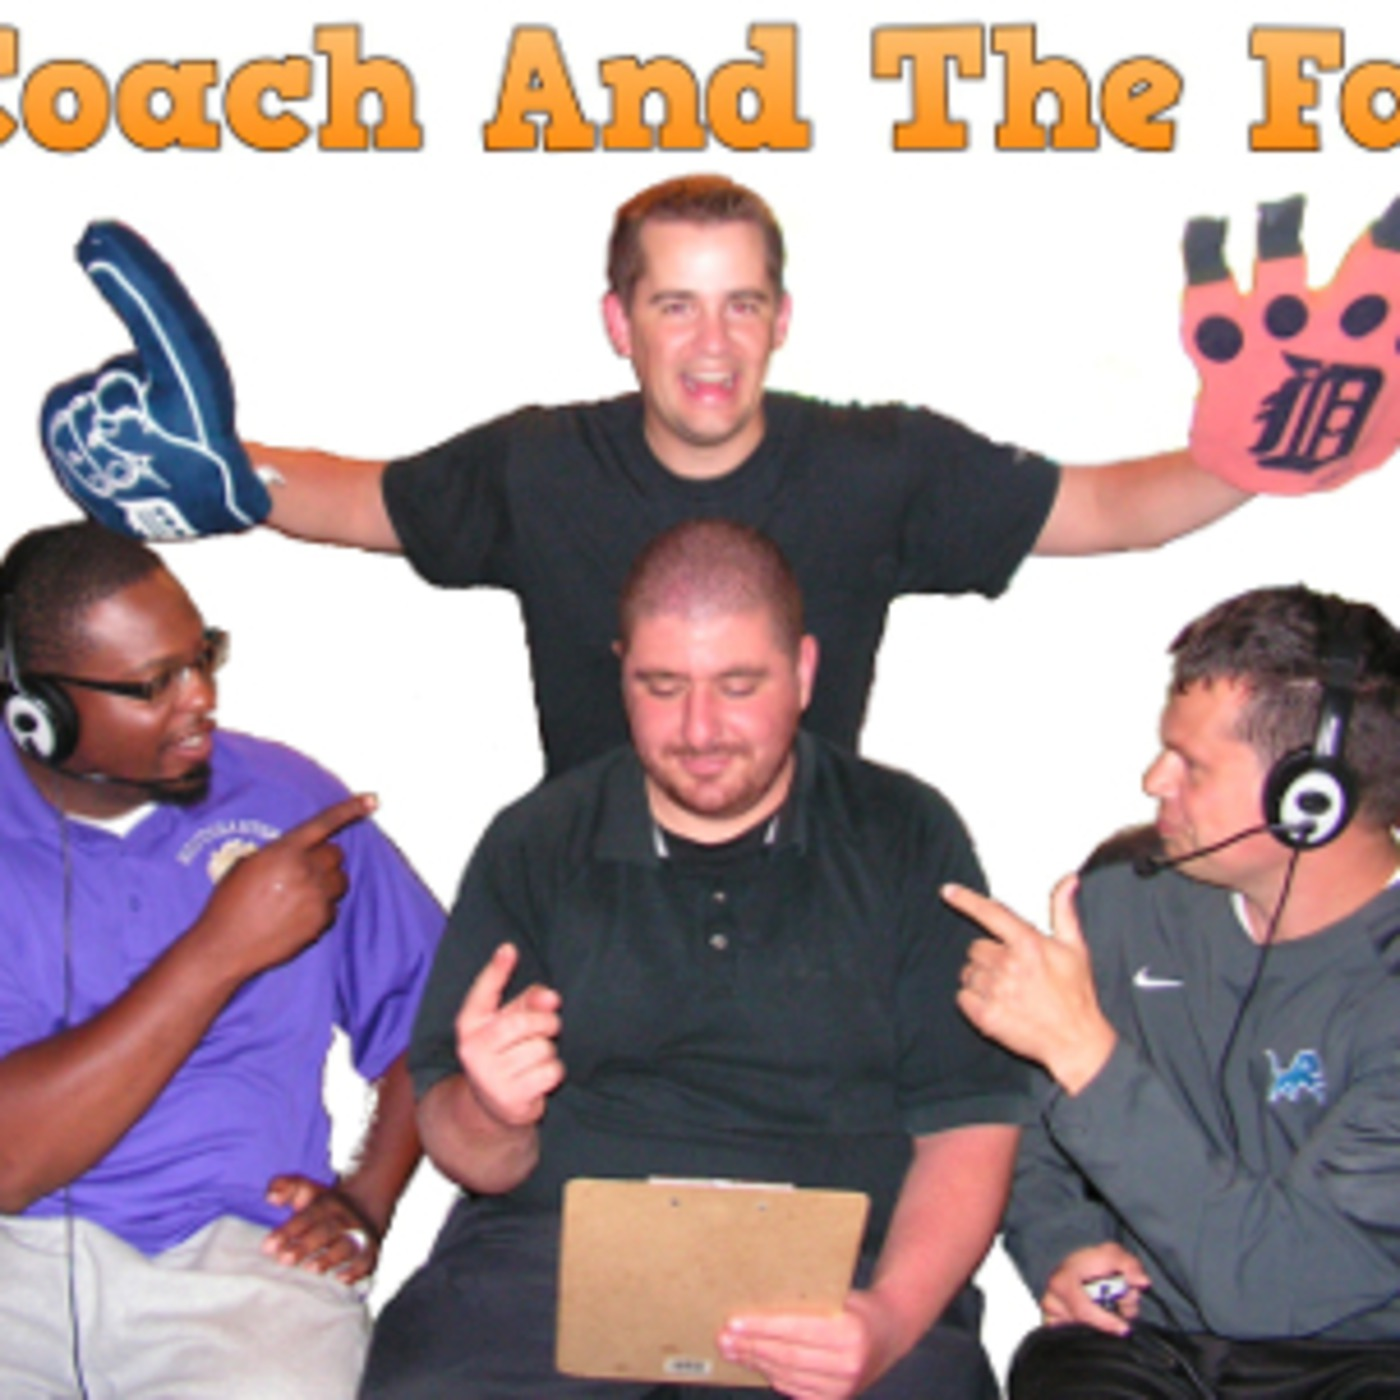 Coach and the Fan's Podcast